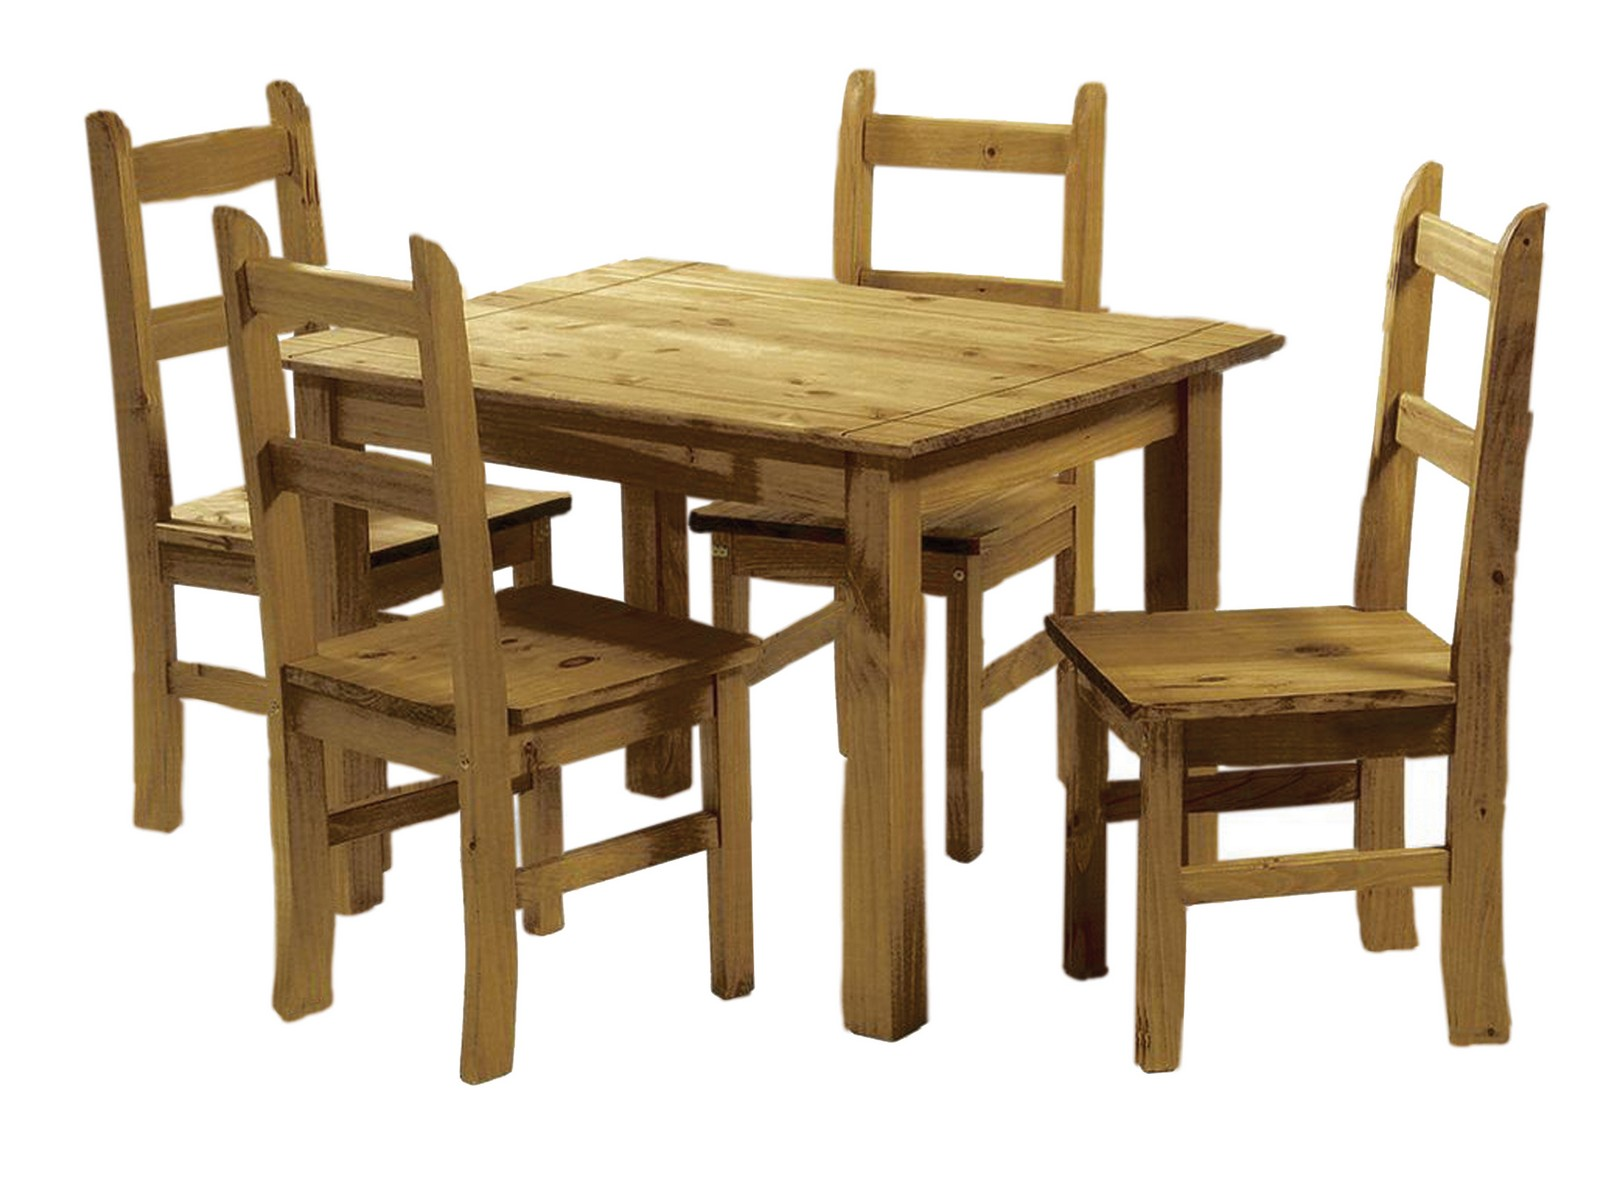 Ecuador Mexican Pine Dining Table and 4 Chairs eBay : ECUADOR20SET from www.ebay.co.uk size 1600 x 1200 jpeg 223kB